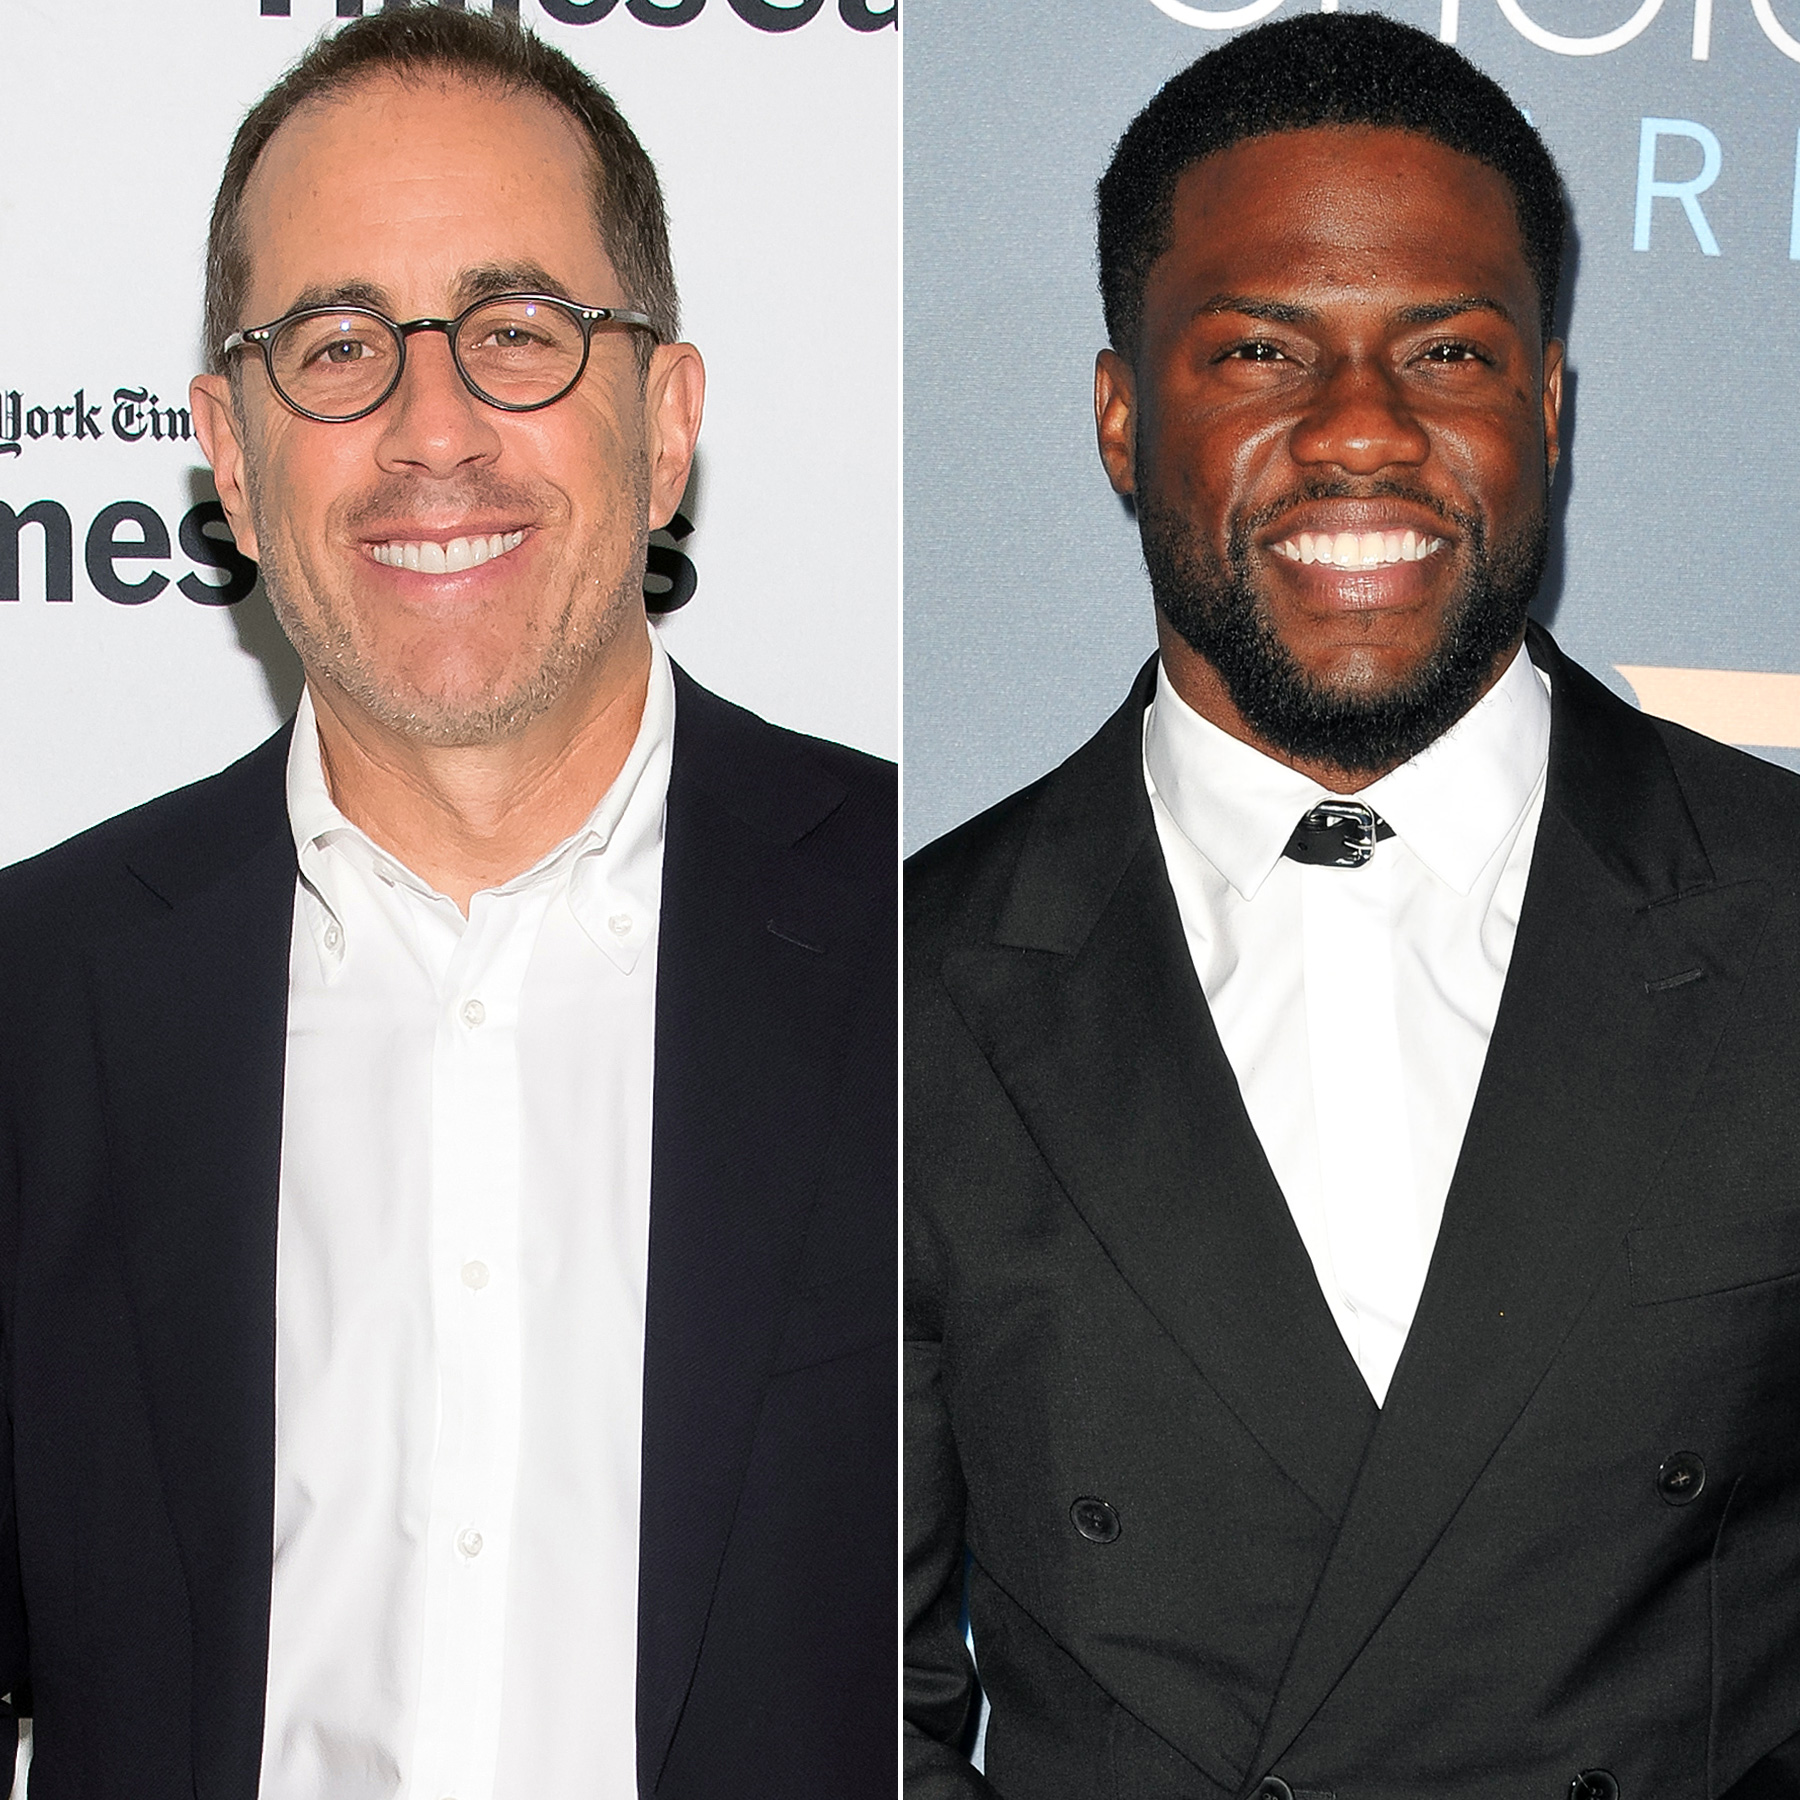 Jerry Seinfeld and Kevin Hart